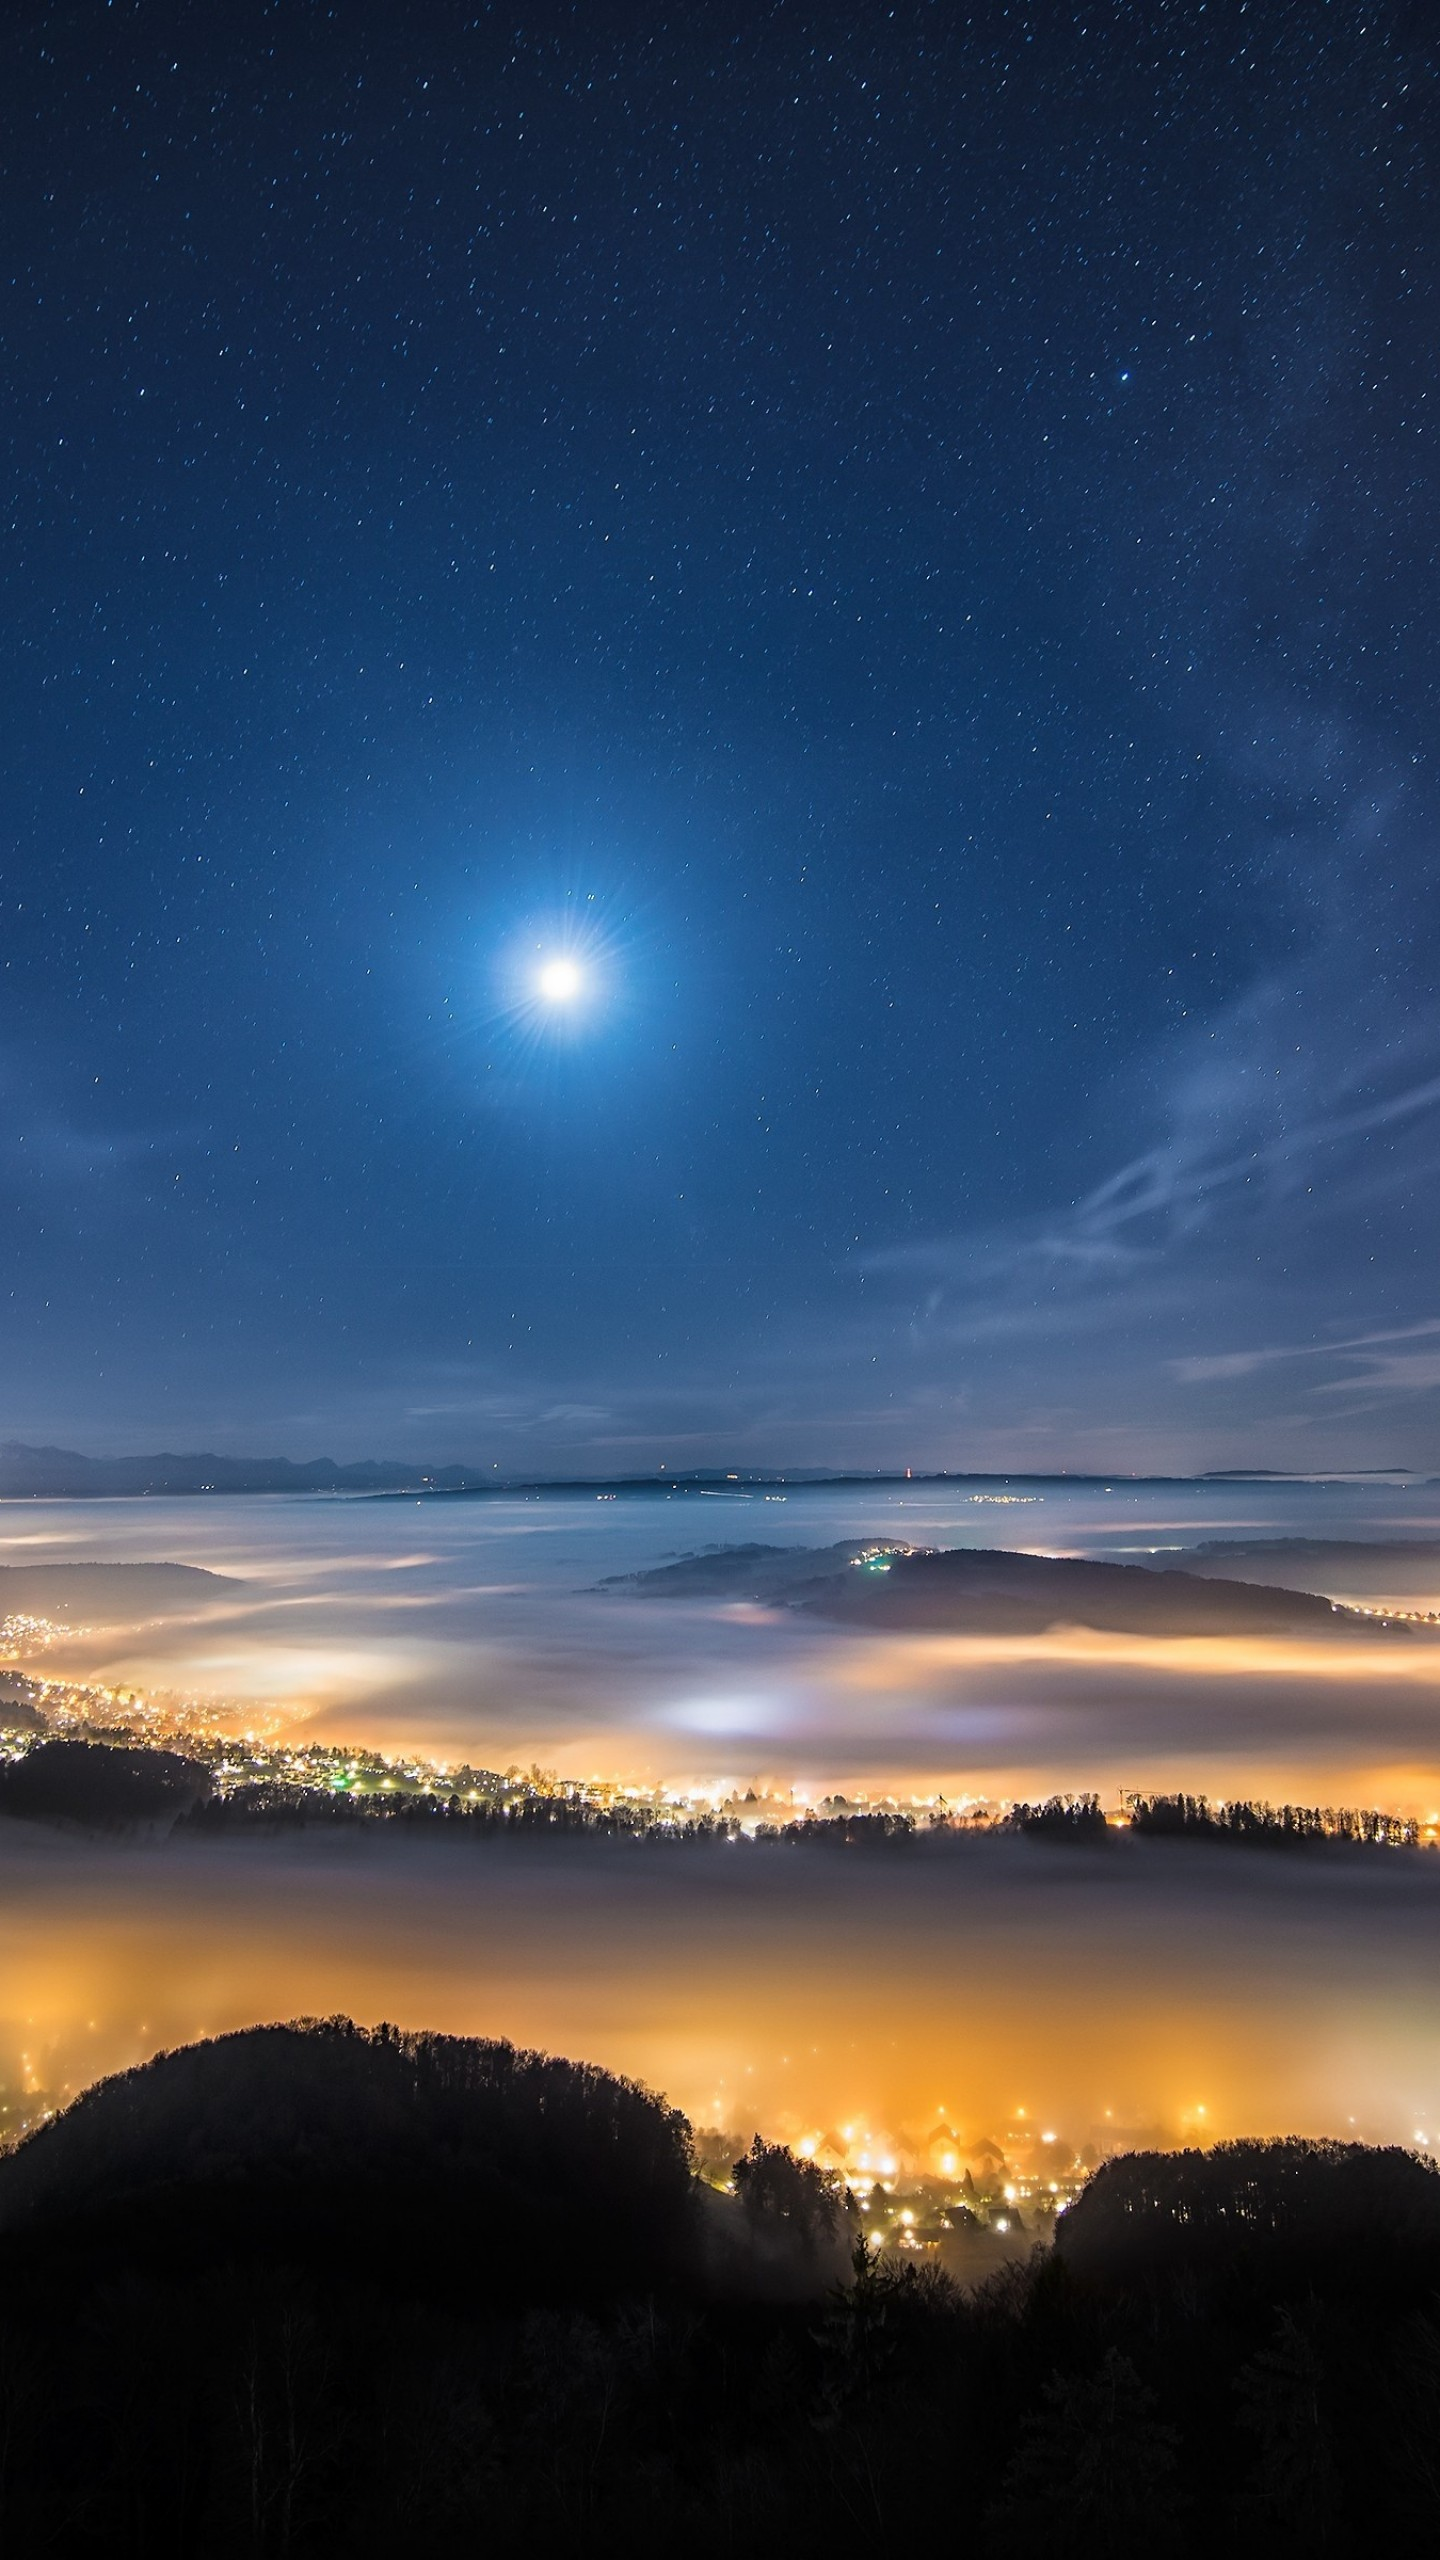 Wallpaper Night Sky, Night City, Earth, Sky, Stars, Clouds